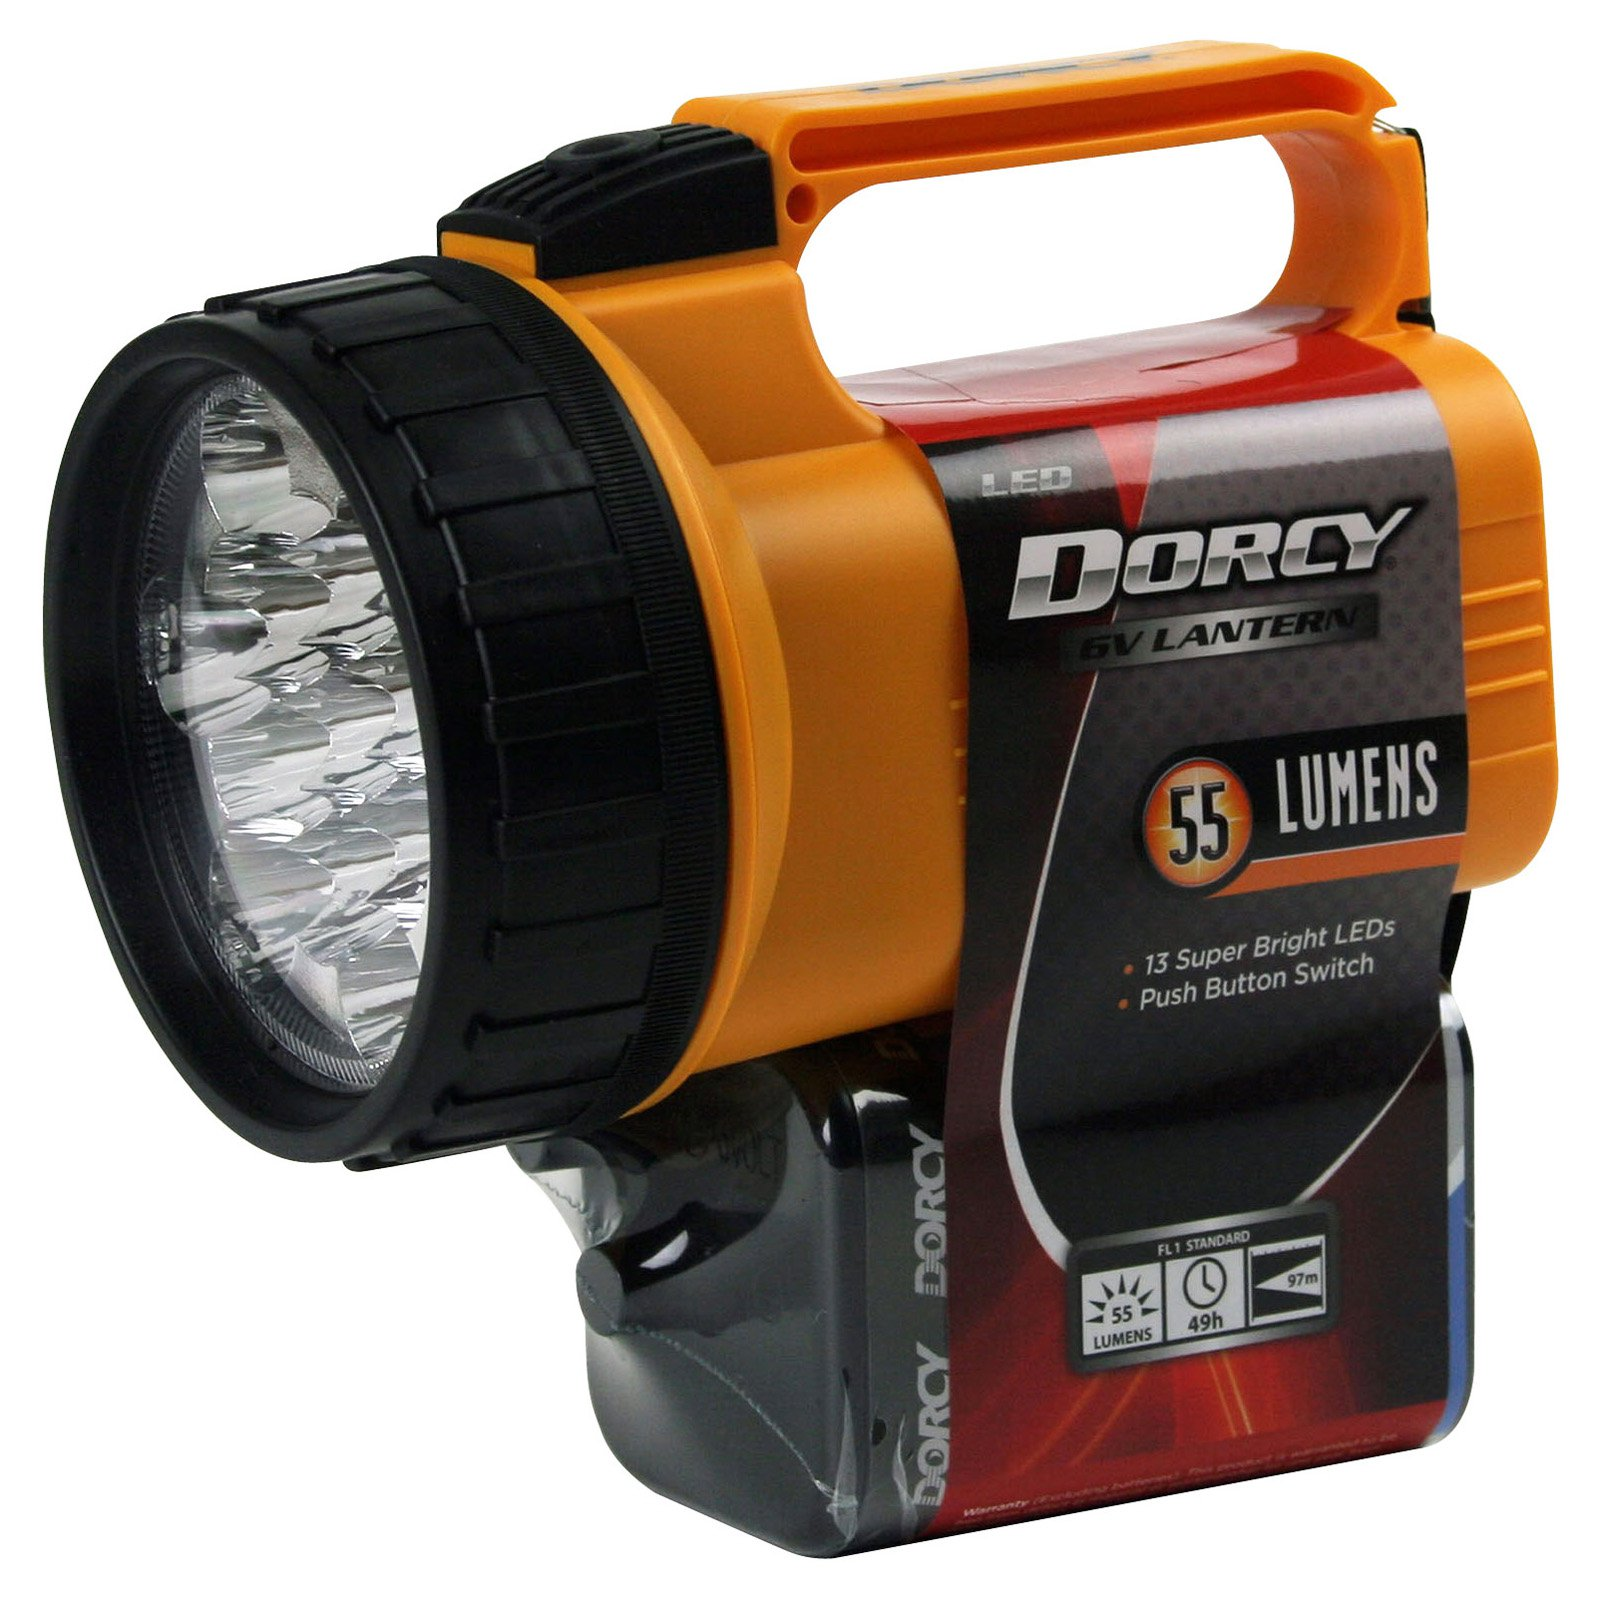 Dorcy International LED Flashlight Lantern with 6 Volt Battery